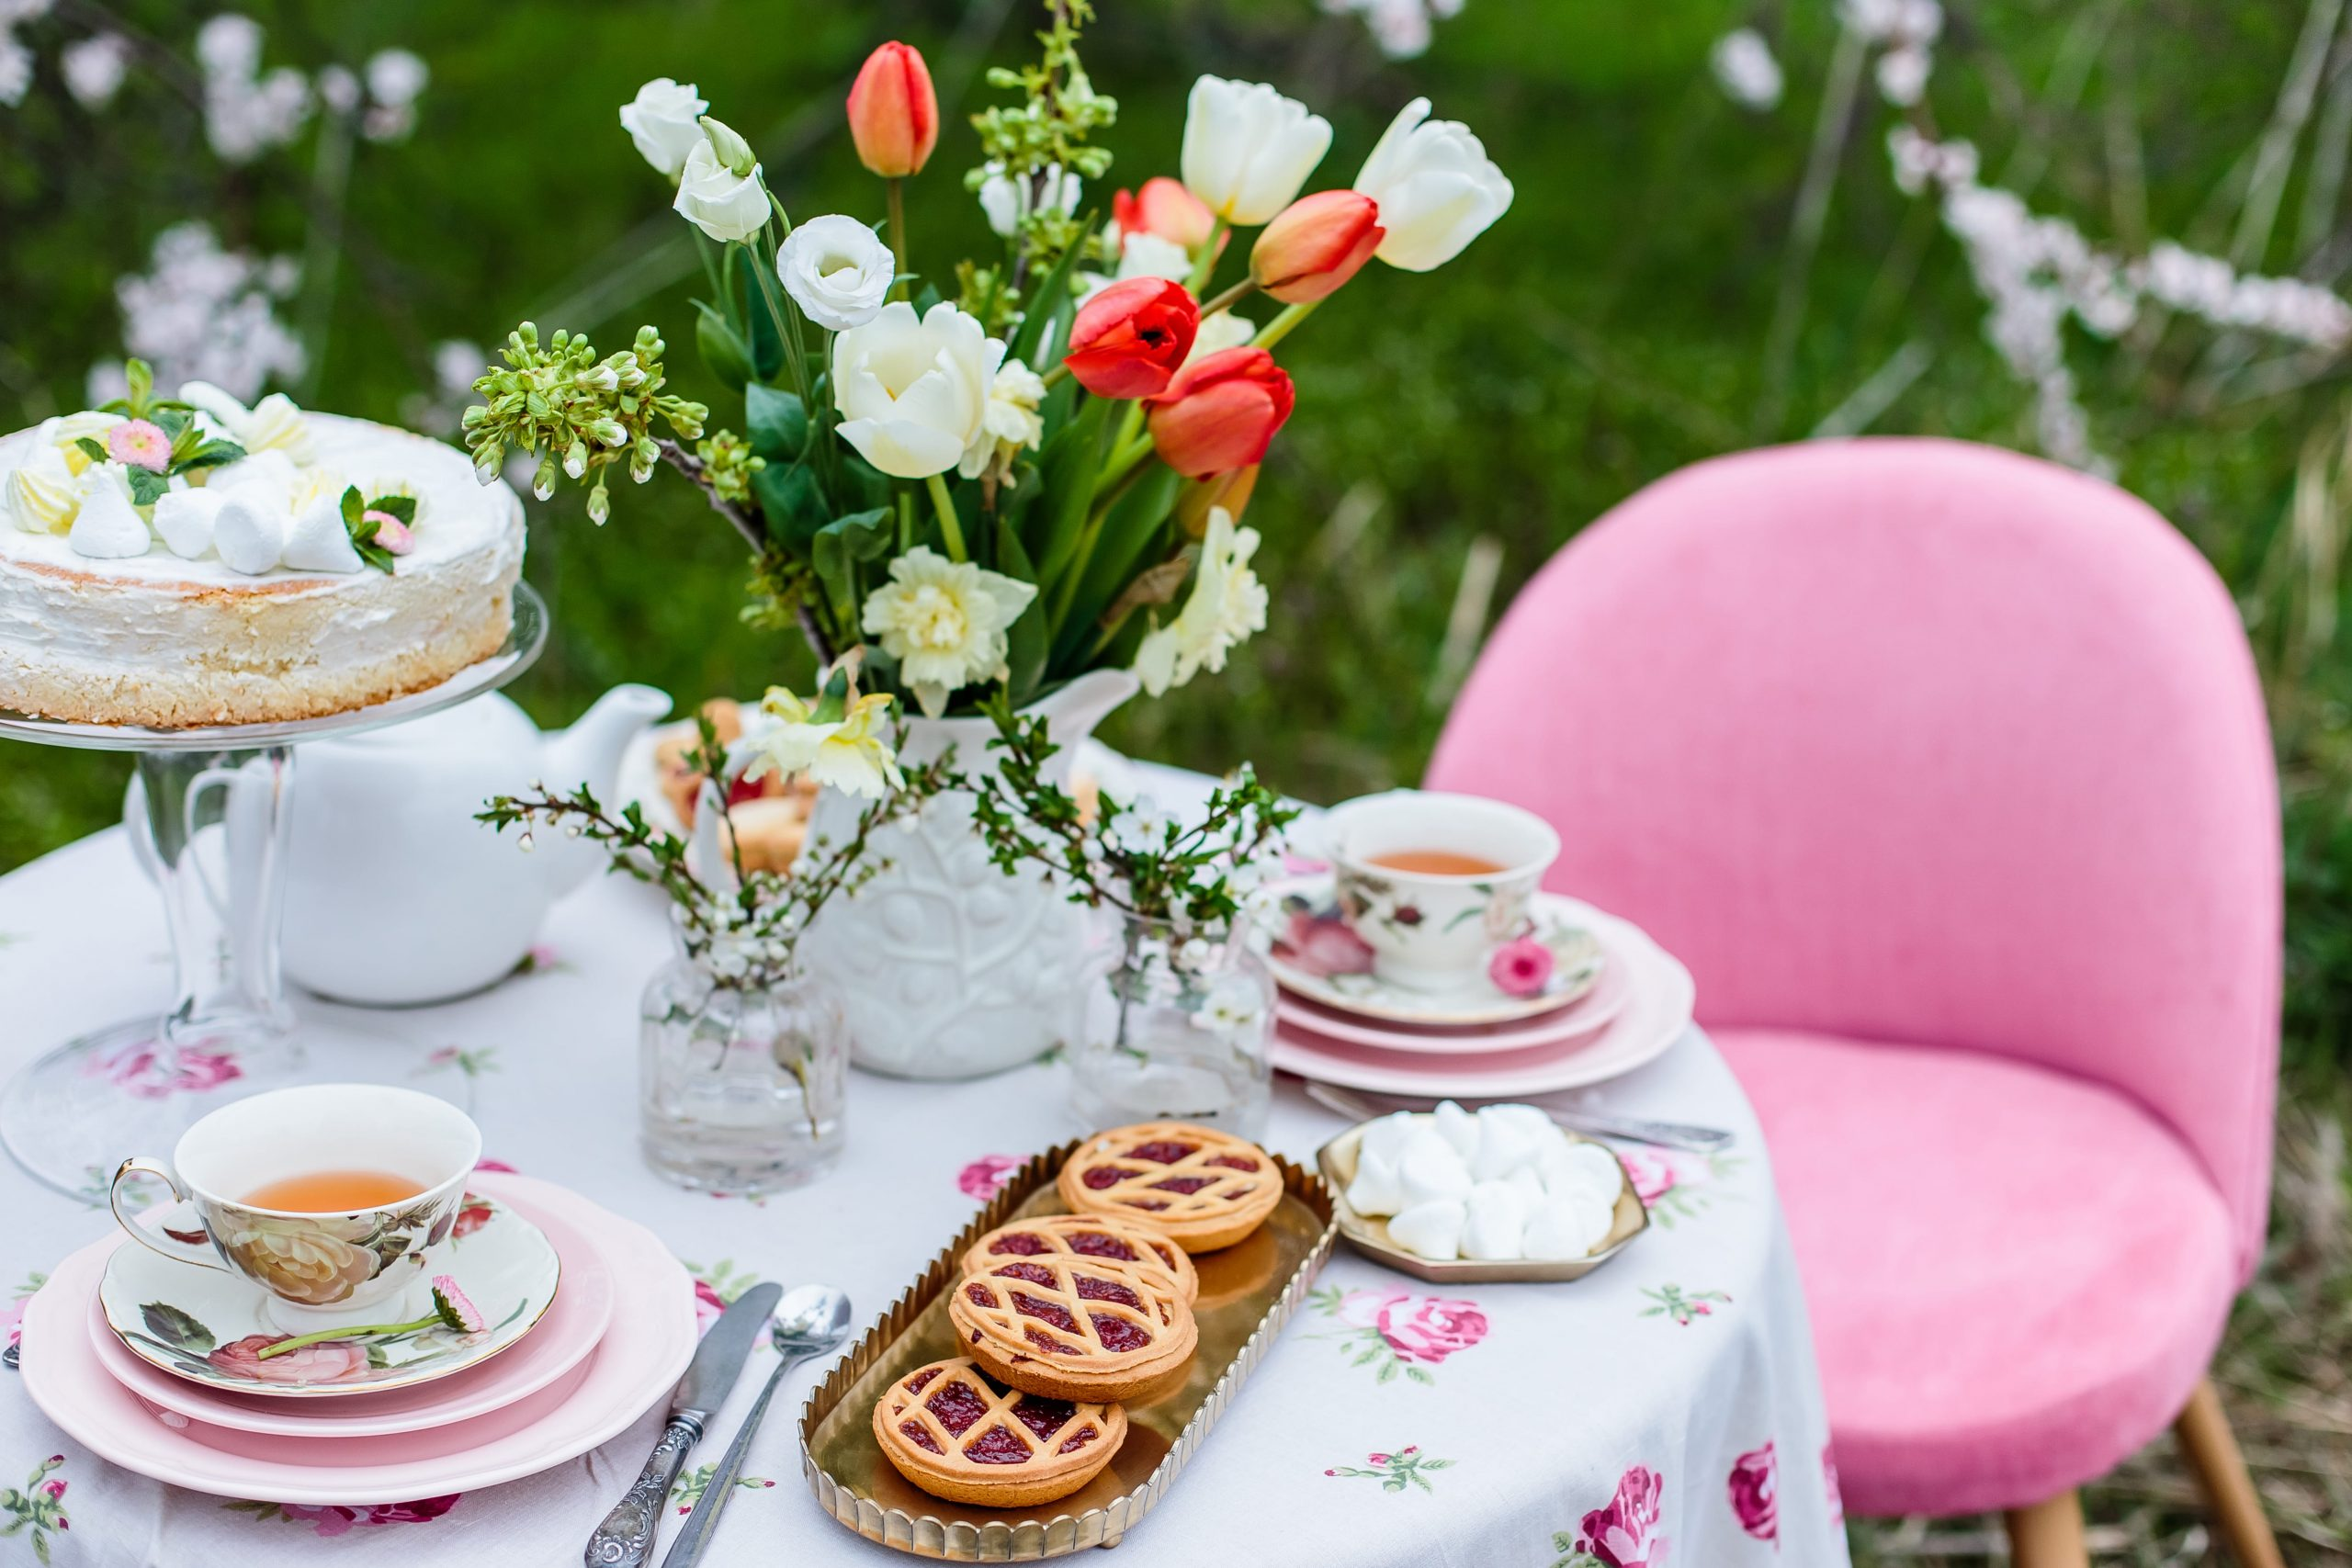 Tea time with cake and cookies in the spring garden outdoors. The table is covered with a floral tablecloth. In english style